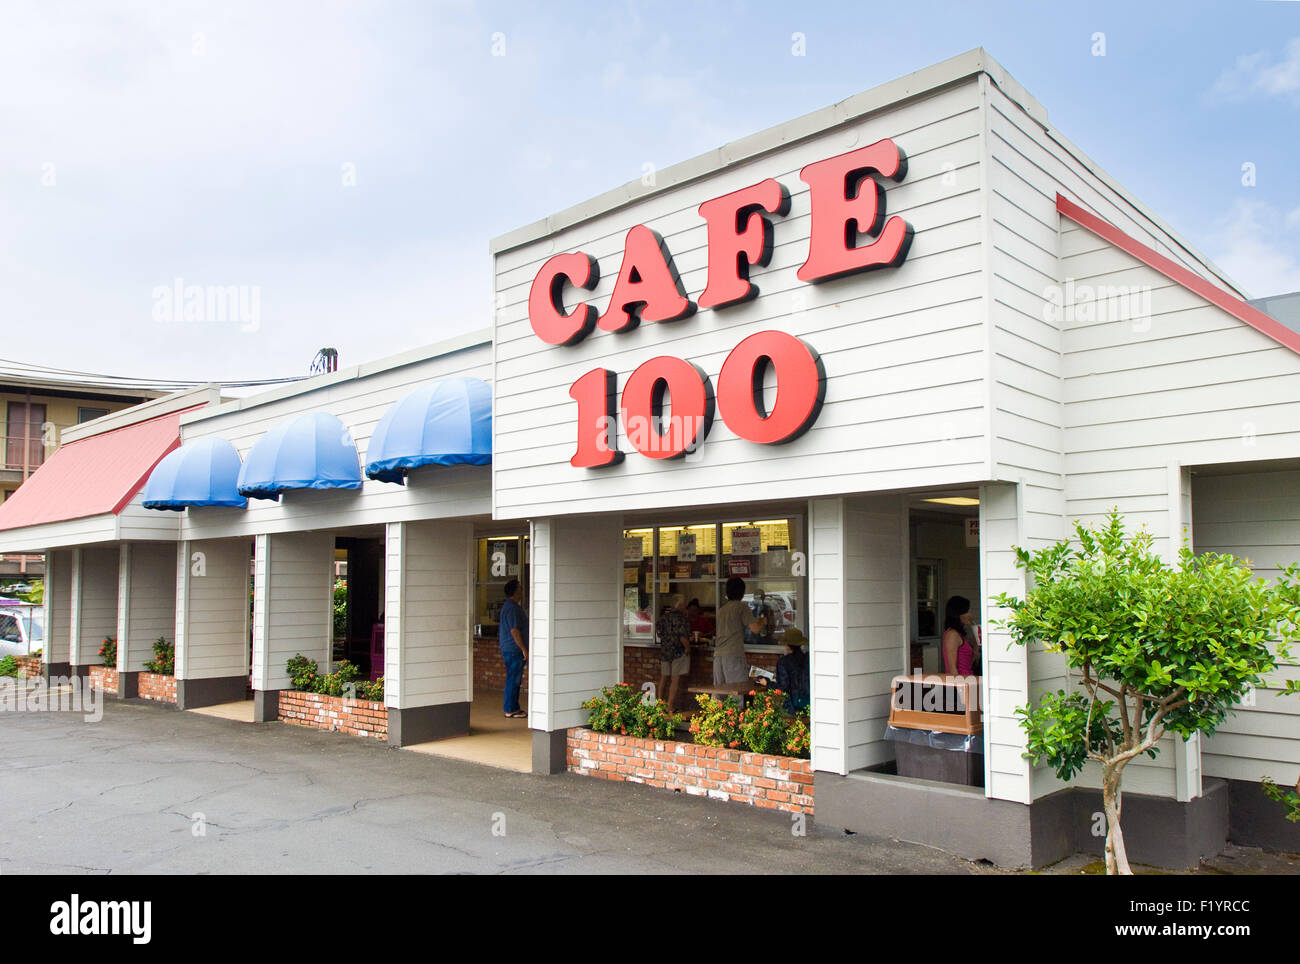 Cafe 100 in Hilo Hawaii. Home of the Loco Moco - Stock Image